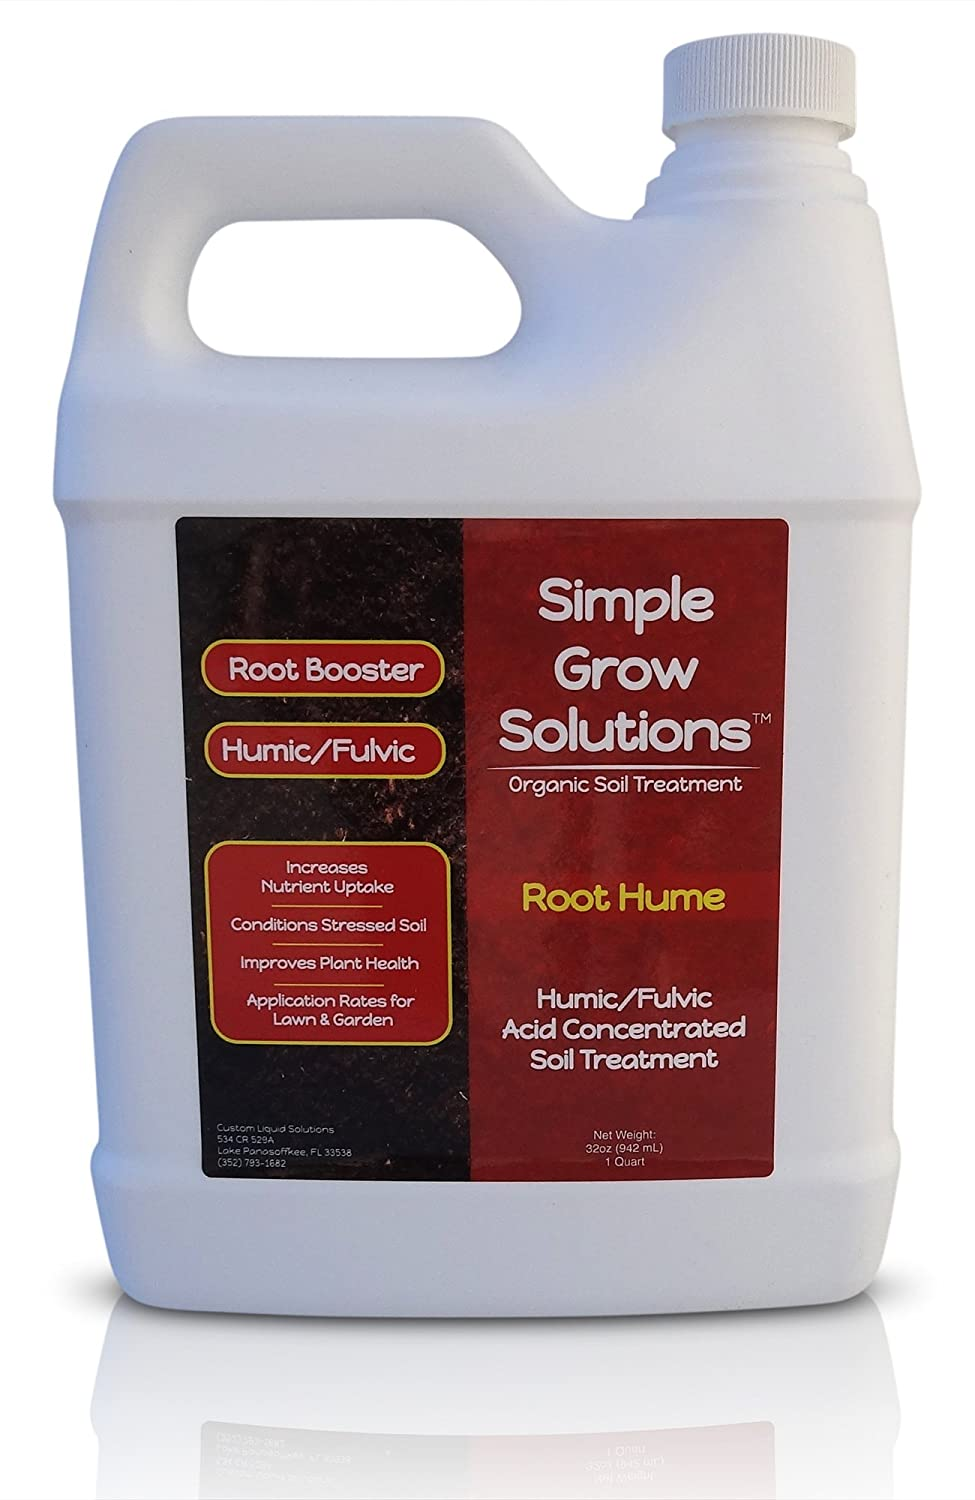 Raw Organic Humic Fulvic Acid- Liquid Carbon - Root Hume- Simple Grow Solutions- Natural Lawn & Garden Treatment- Nutrient Plant Food Enhancer- Concentrated Turf Grass Soil Conditioner (32 Ounce)